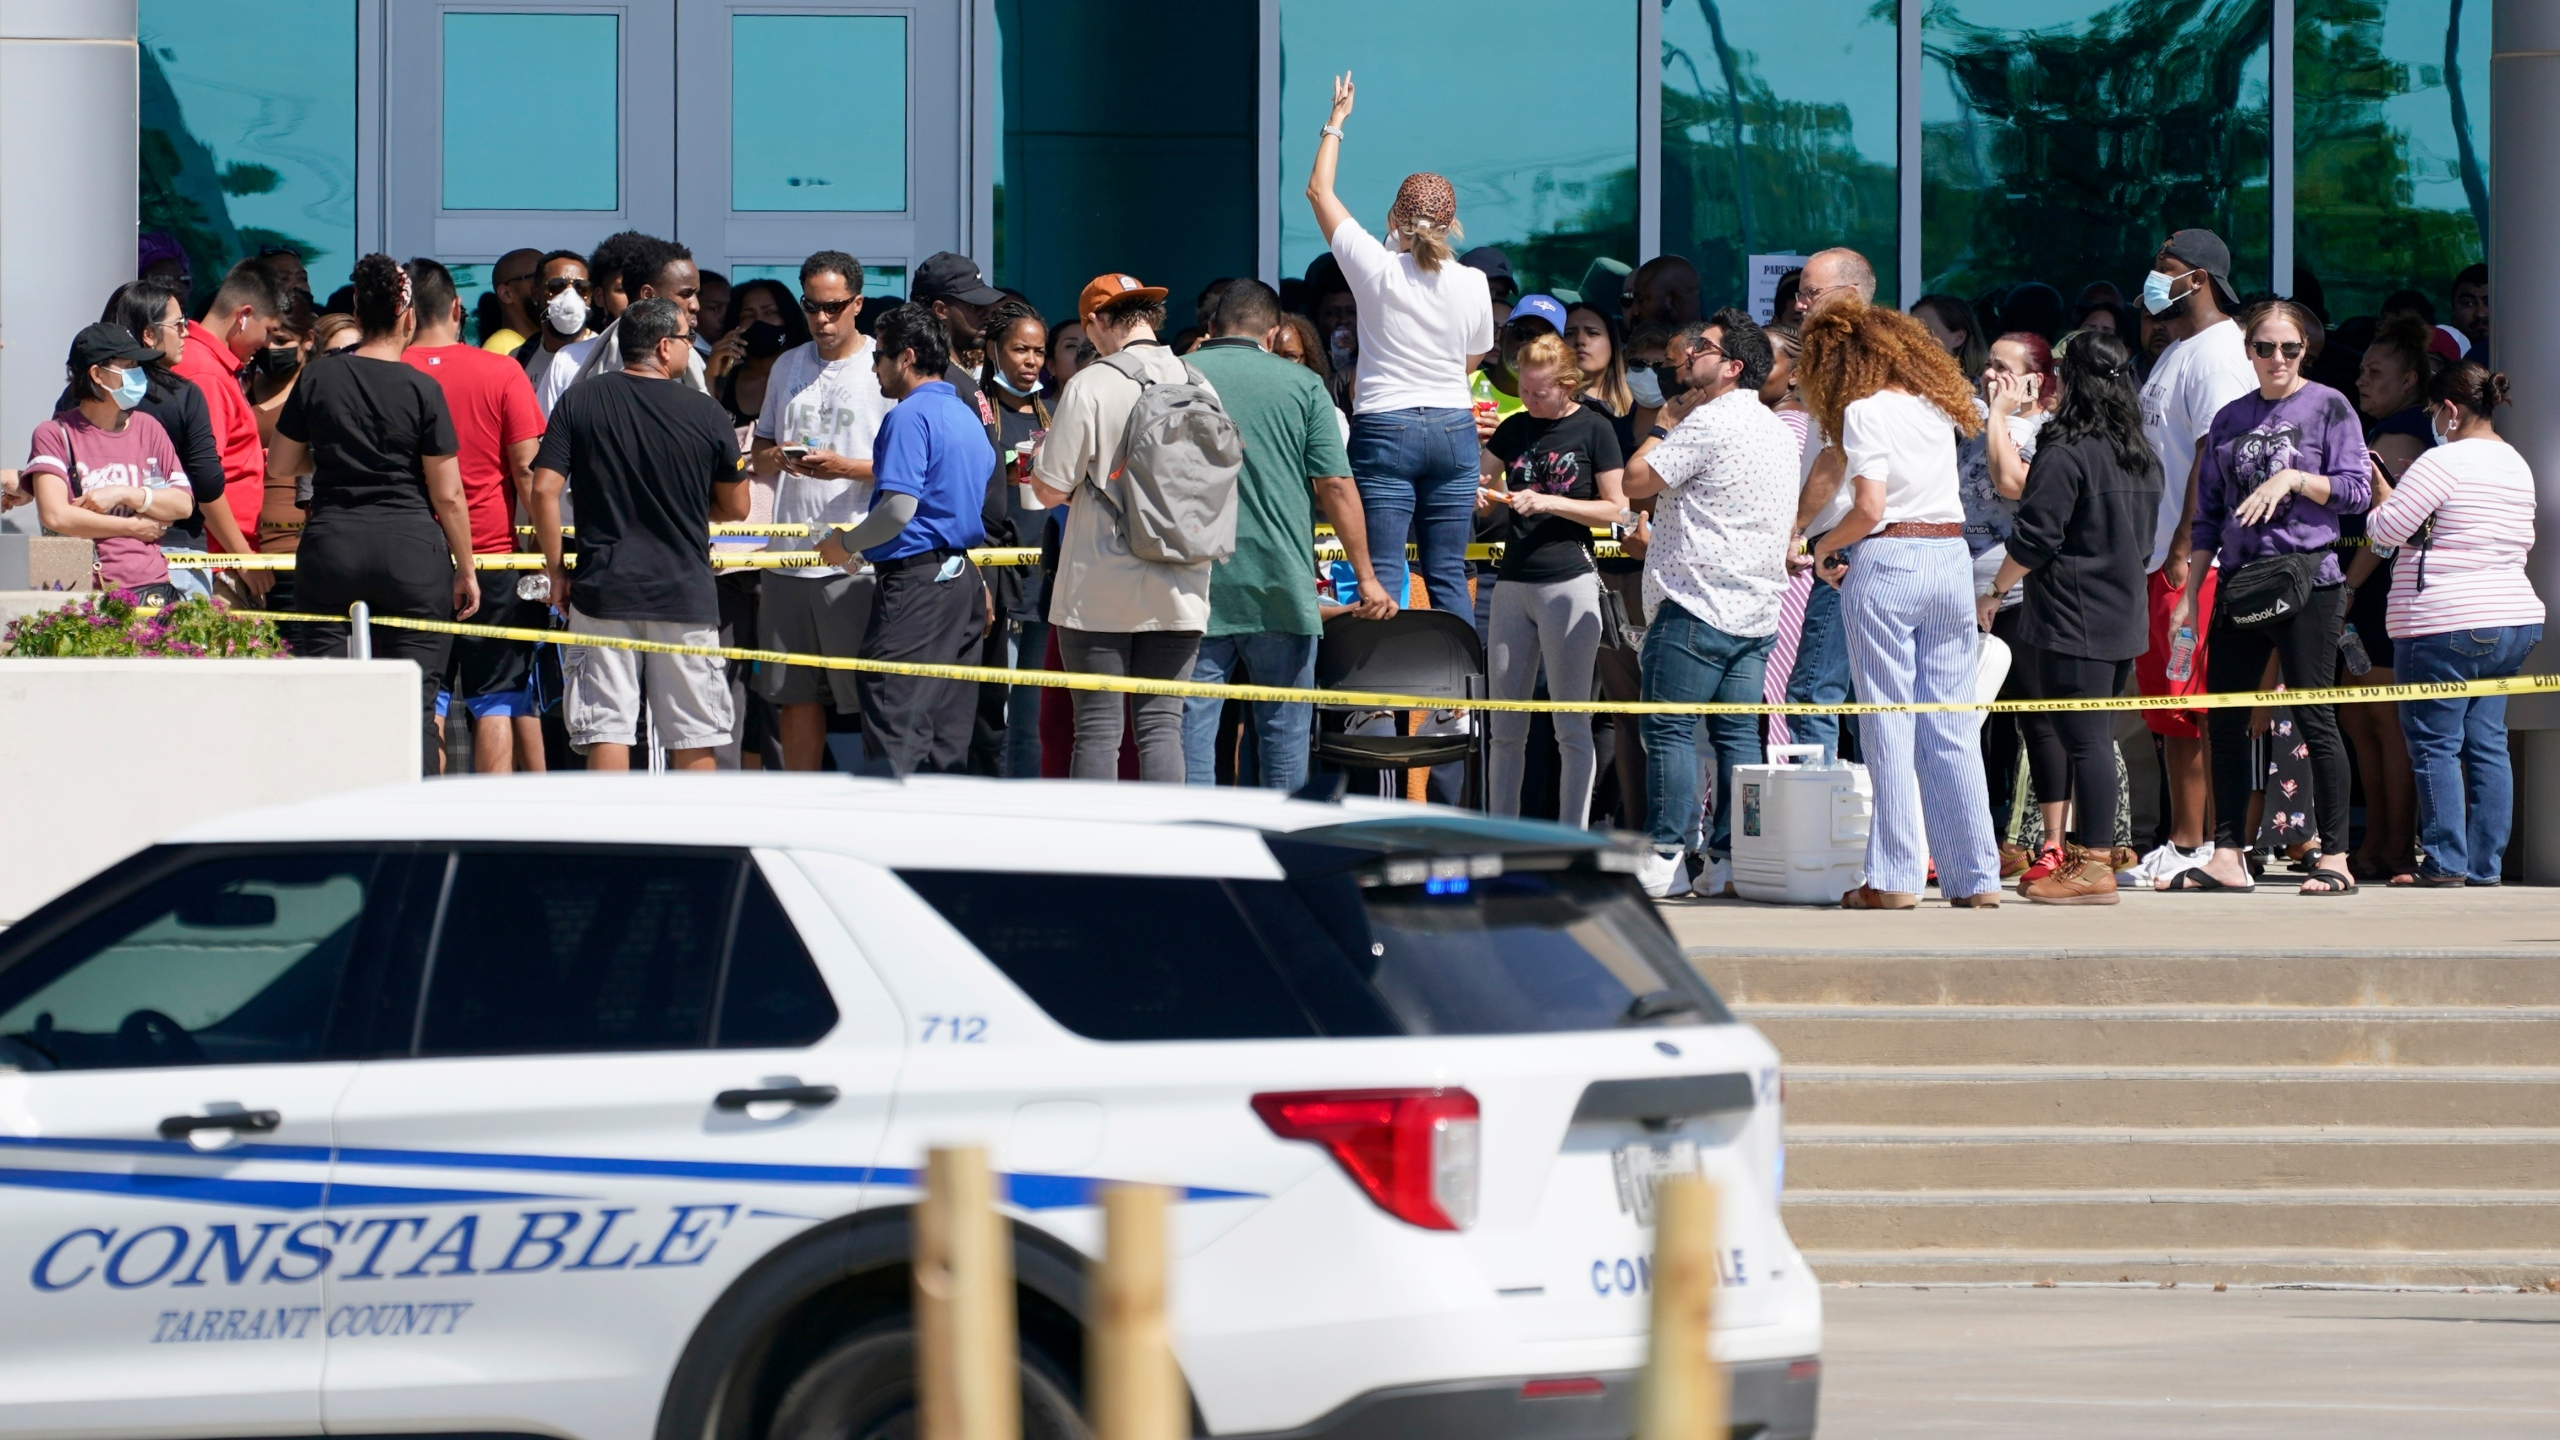 Families are addressed by an unidentified person at center, as they wait to be reunited with their children at the Mansfield ISD Center For The Performing Arts, Wednesday, Oct. 6, 2021, in Mansfield, Texas, following a school shooting at Timberview High School in Arlington. (AP Photo/Tony Gutierrez)